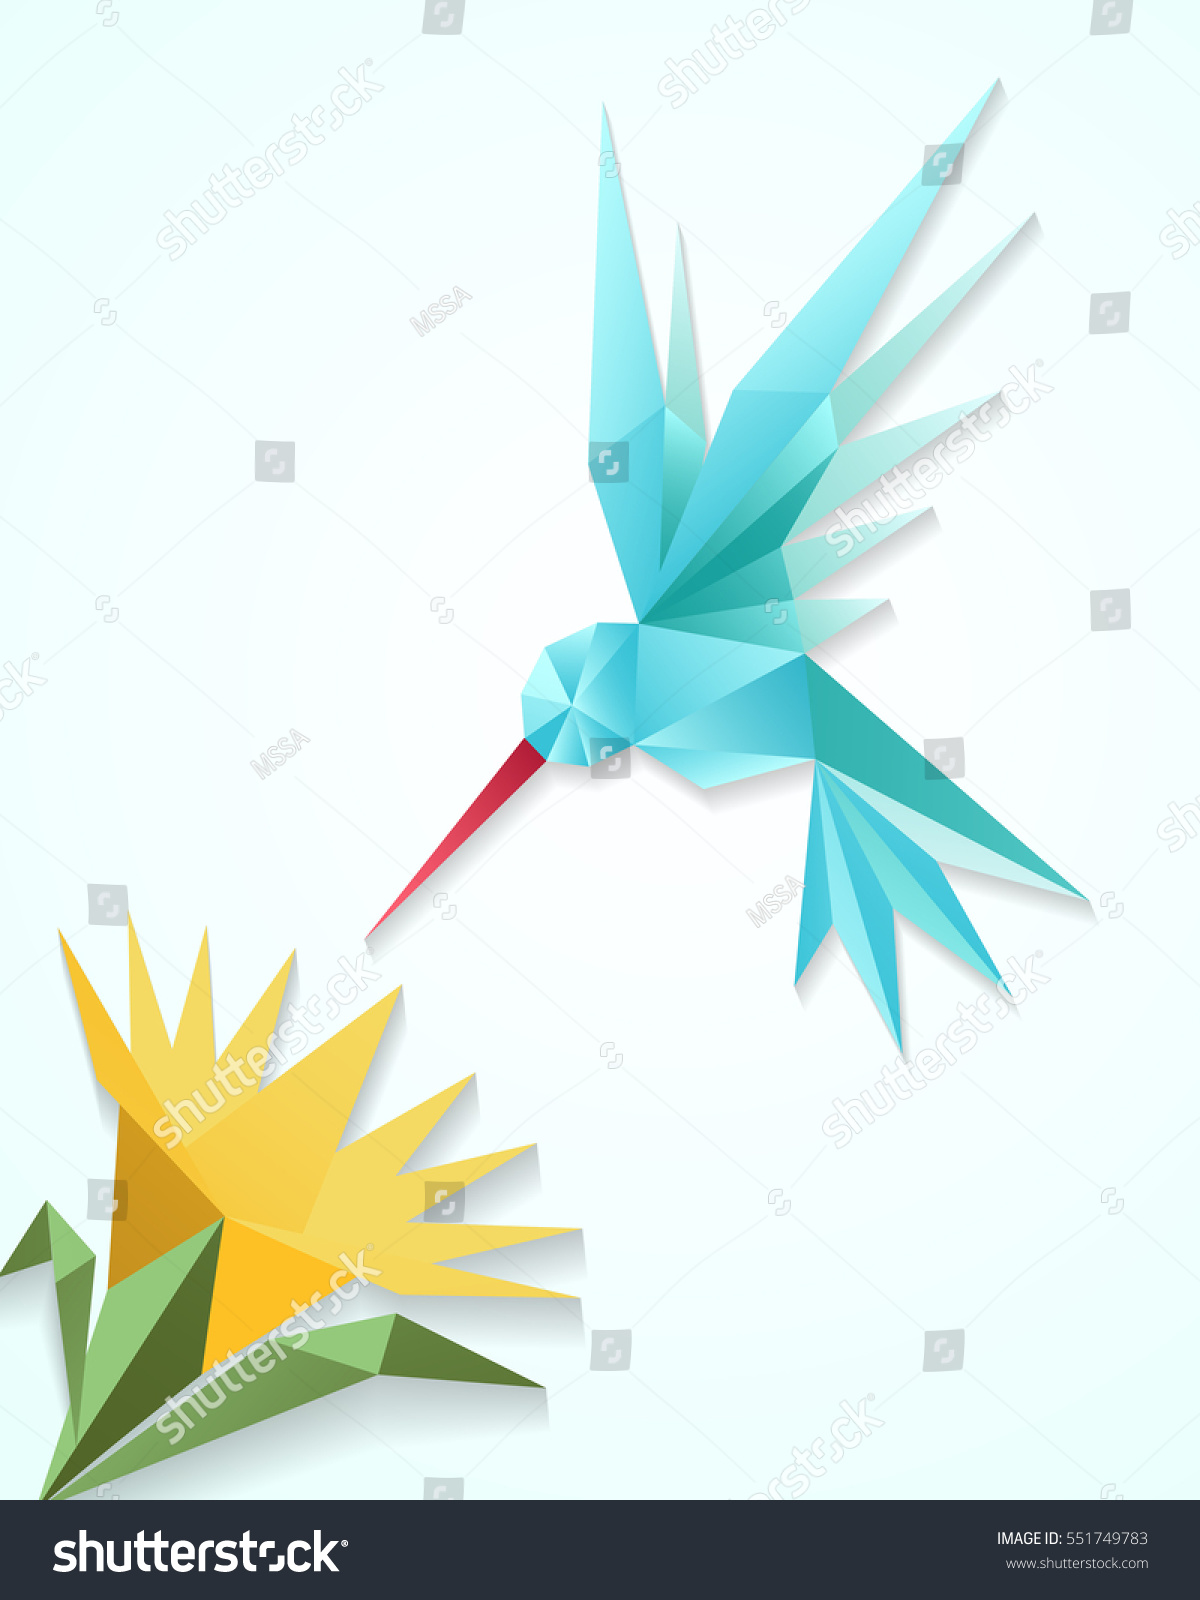 Origami Hummingbird Flower Paper 3d Humming Stock Vector ... - photo#29